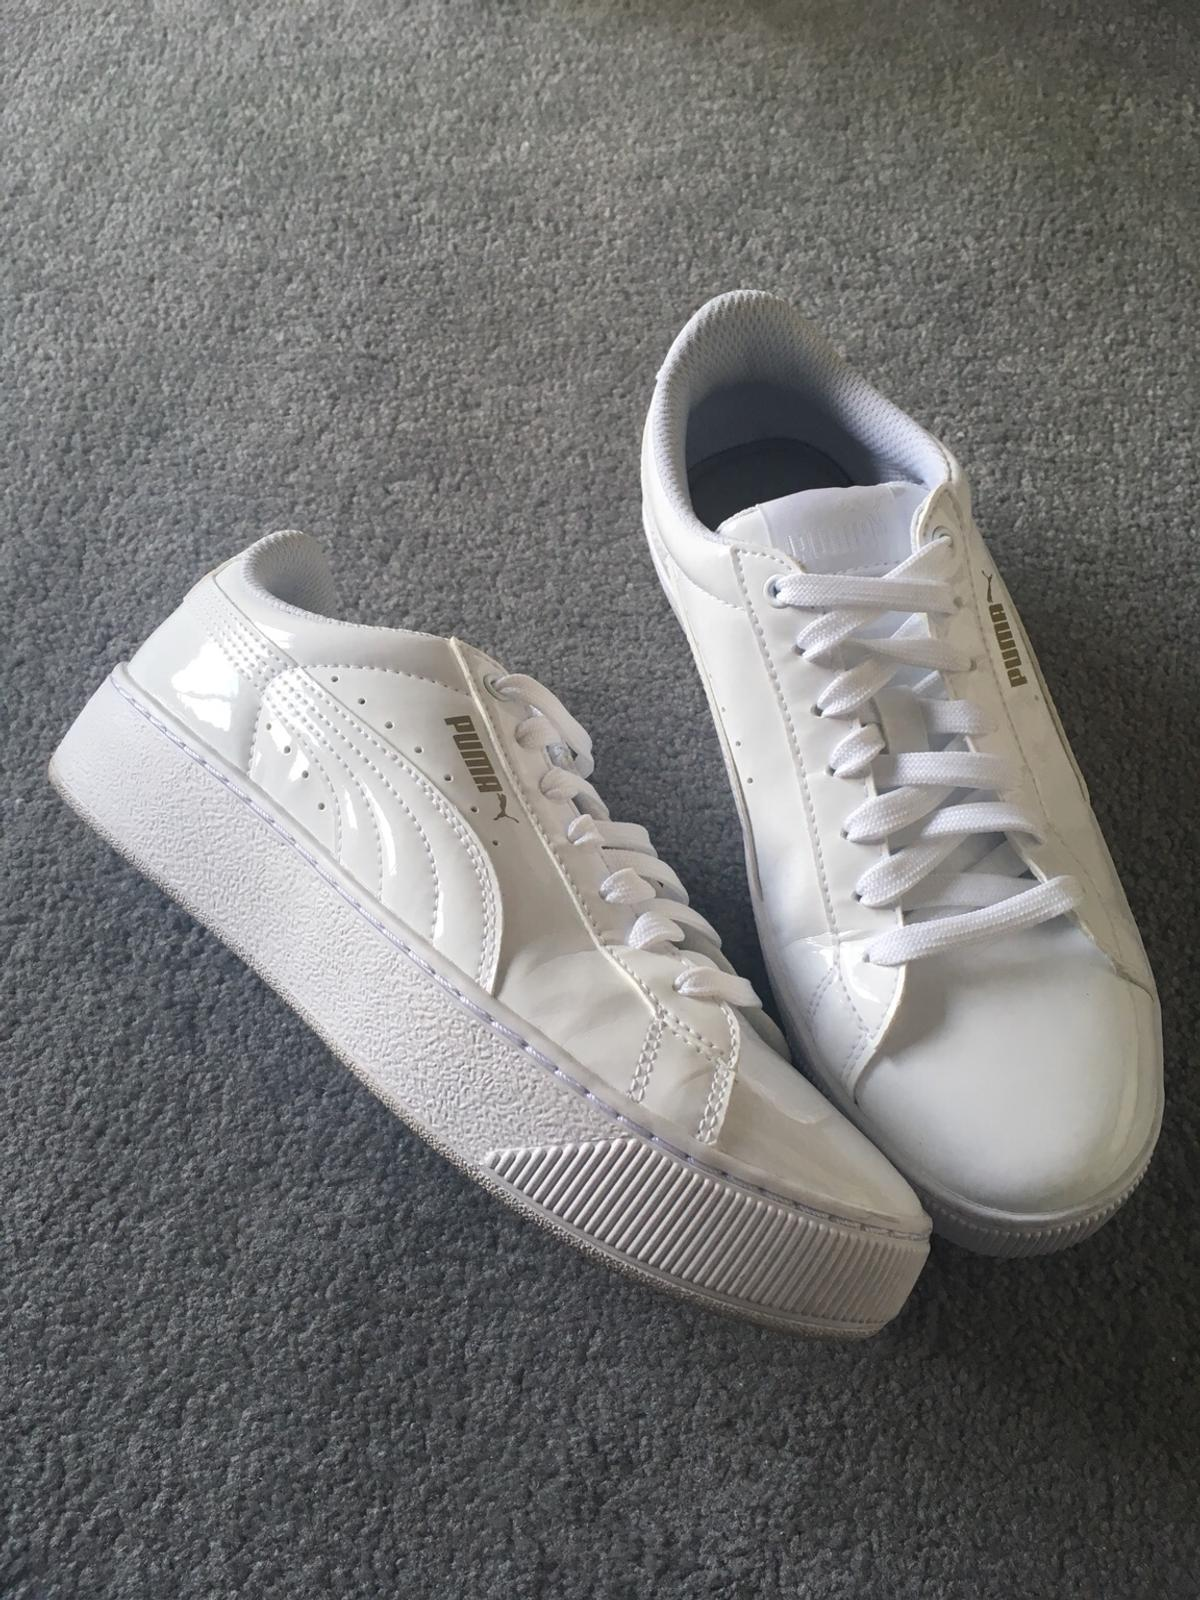 on sale a6107 60382 Ladies Puma white patent trainer size 4